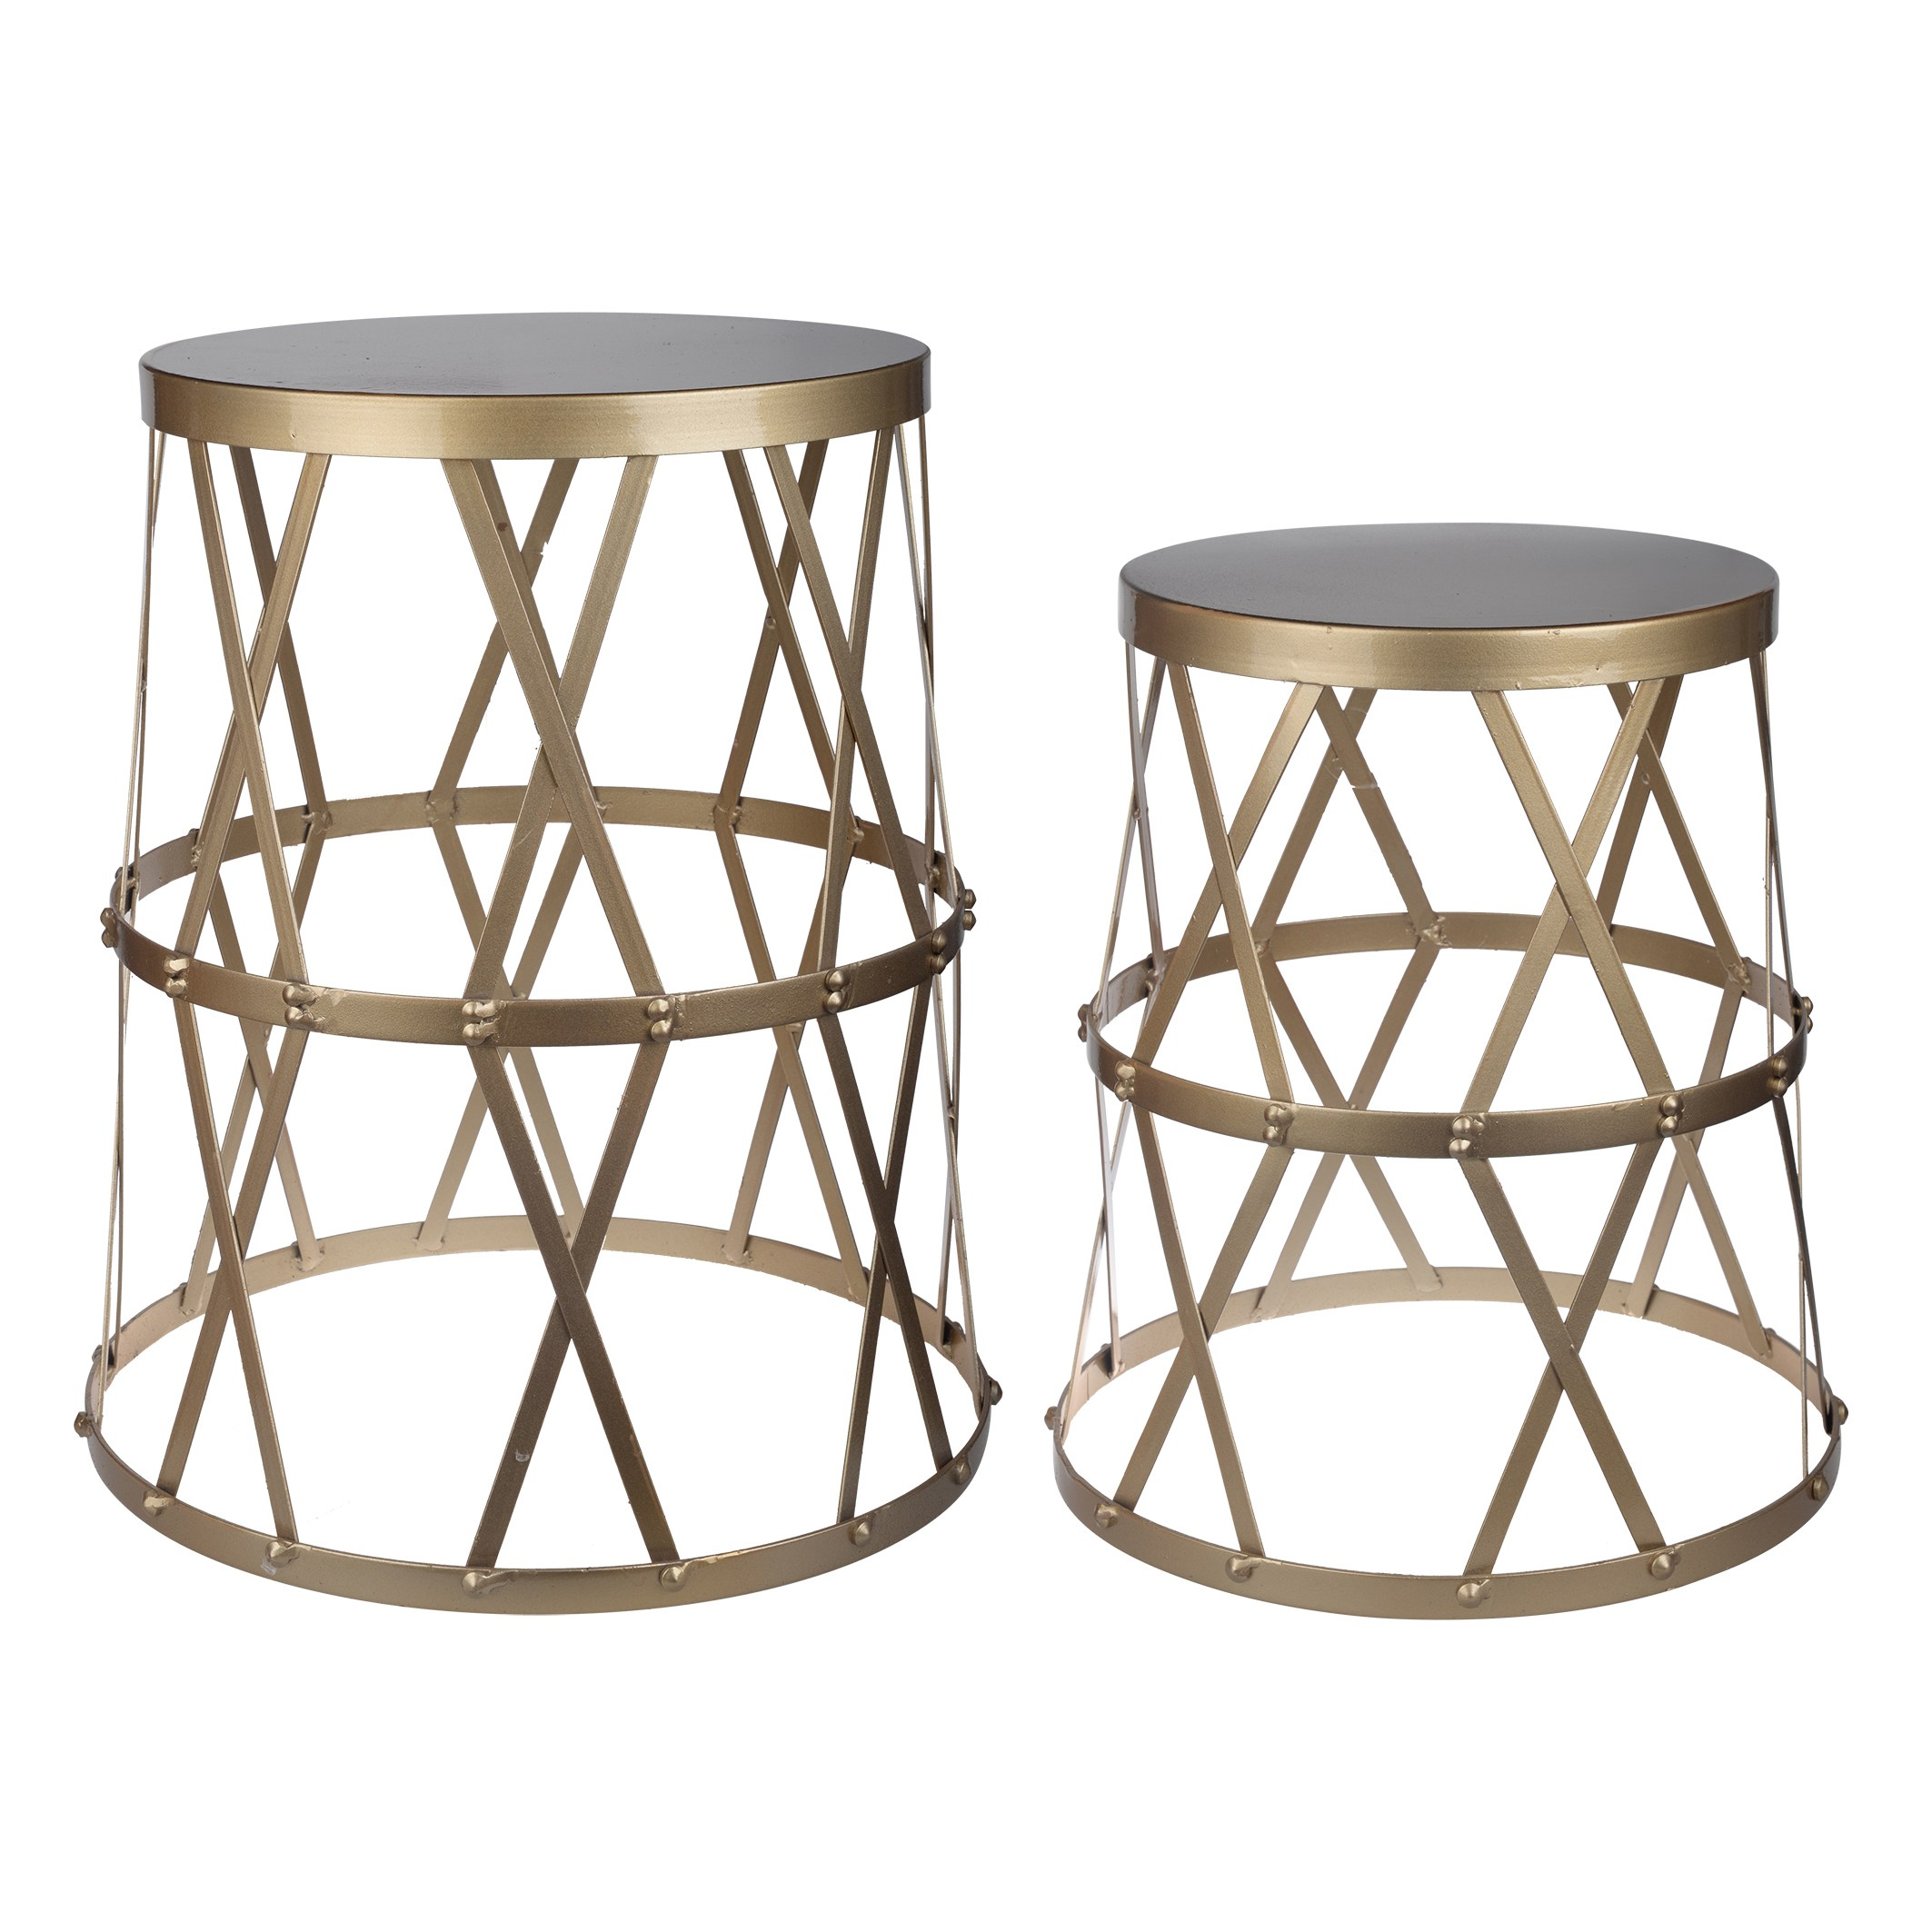 kathy urban vogue gold accent tables set free table shipping today round counter height and chairs colorful side white outdoor end decor nesting living room bronze lamp drawer